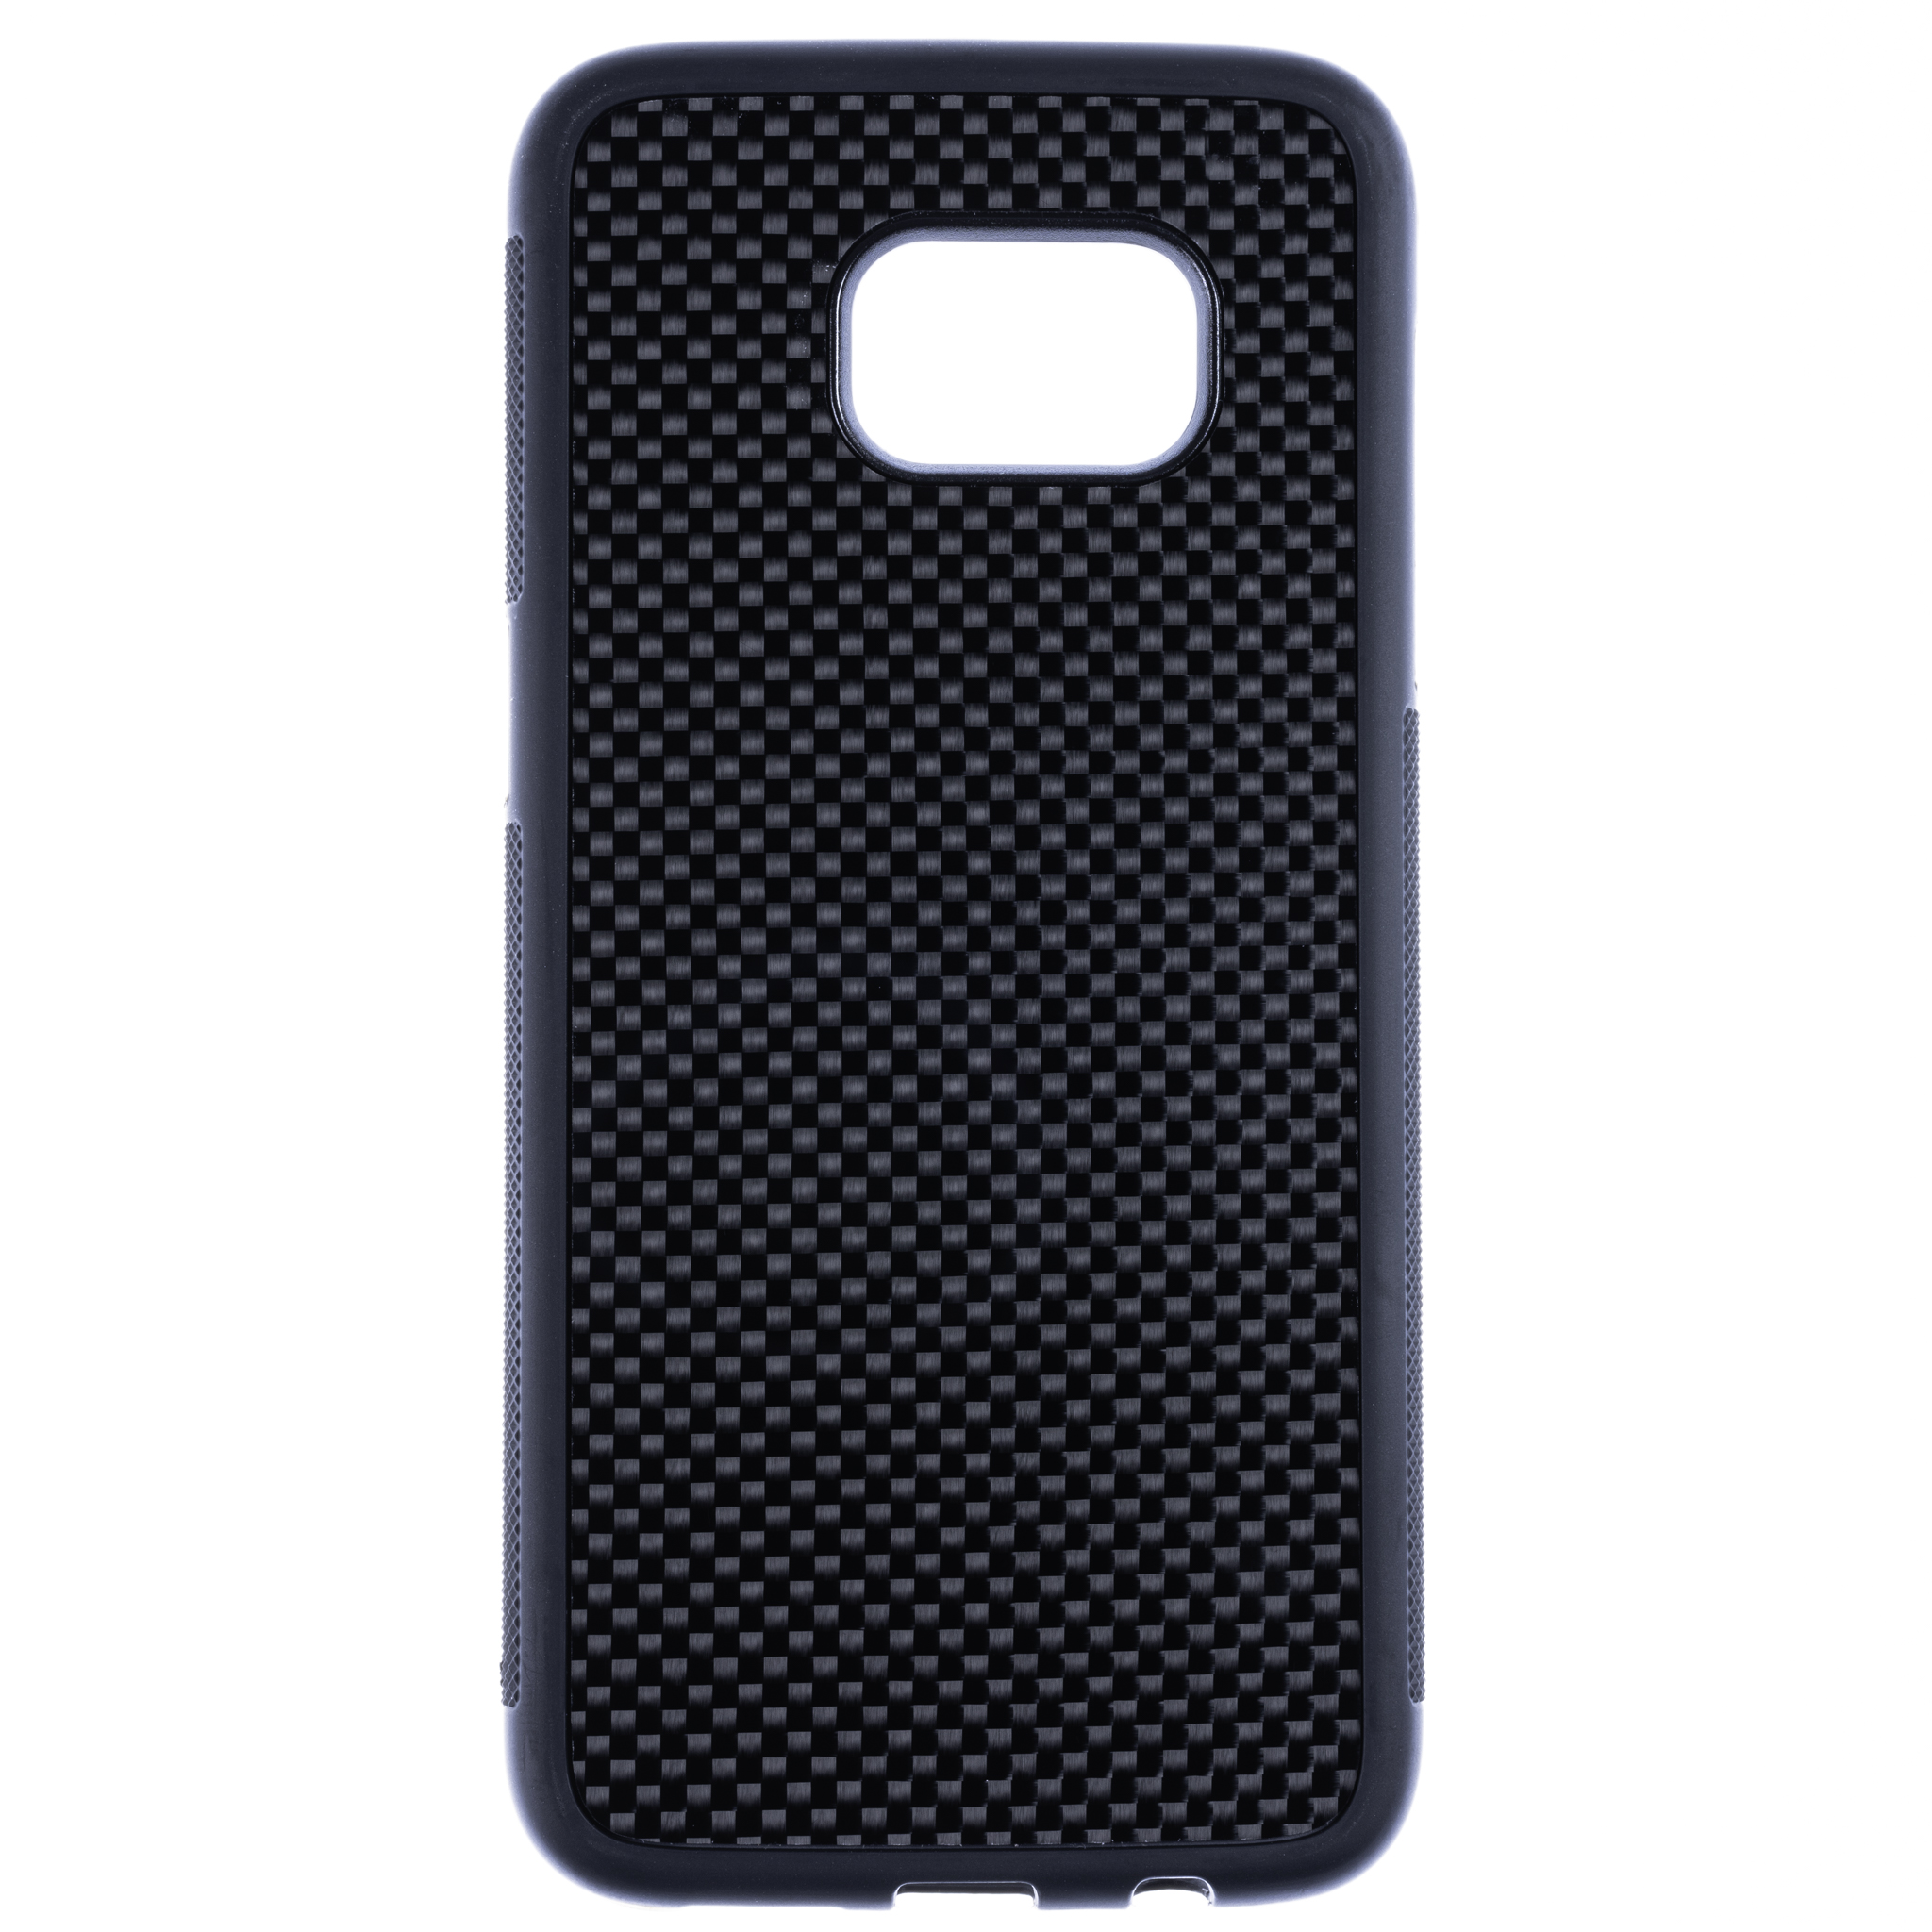 Samsung S7 Edge Carbon Fibre Case